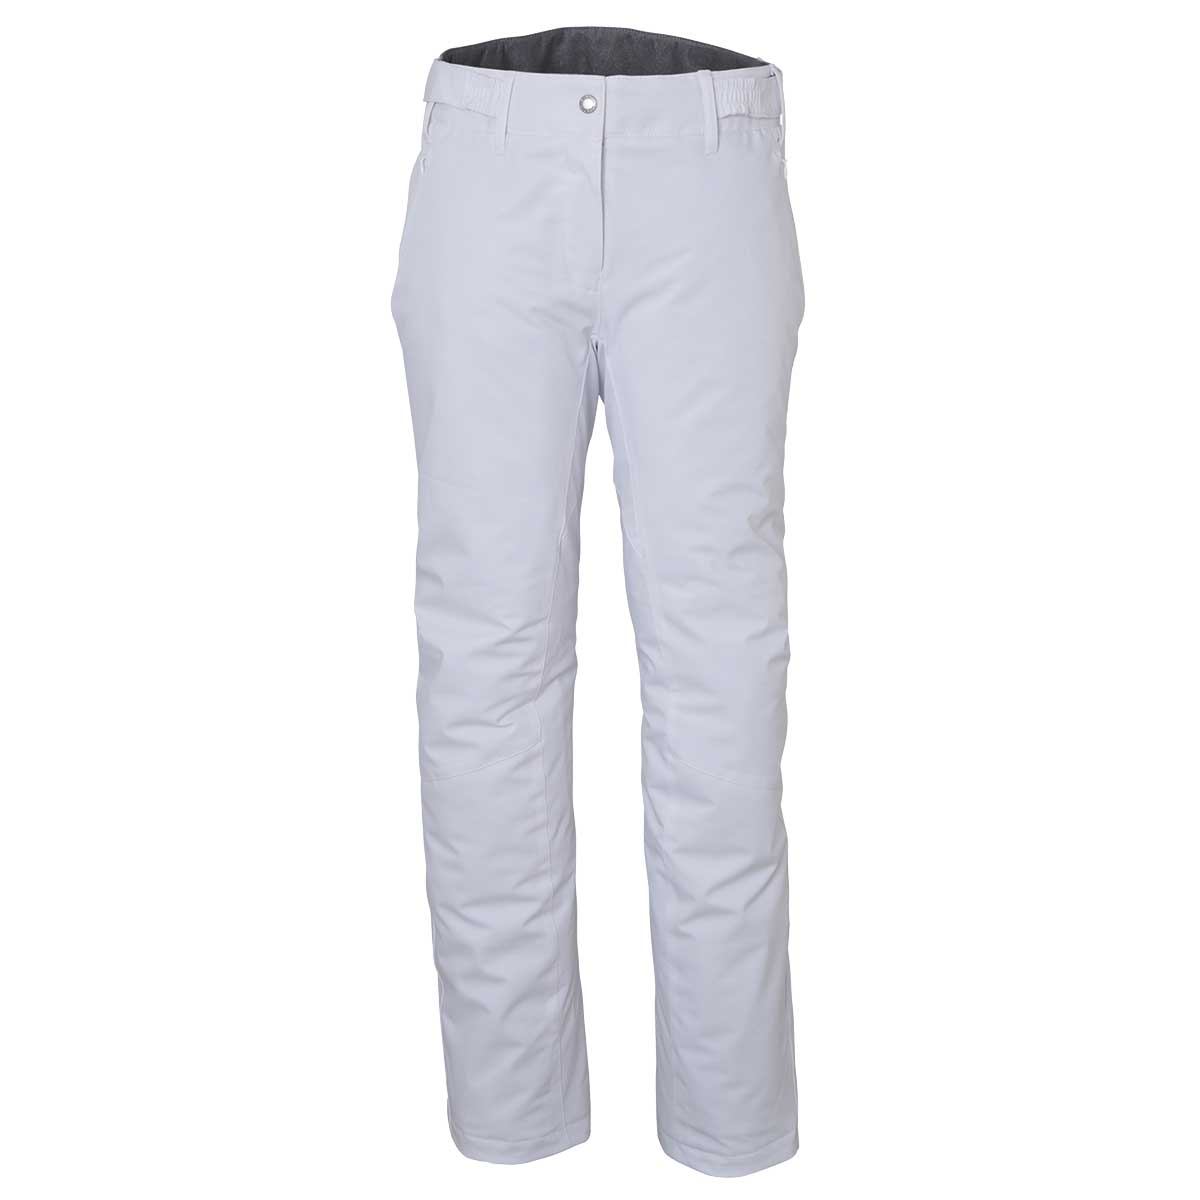 Phenix women's Lily Slim Pant in White front view